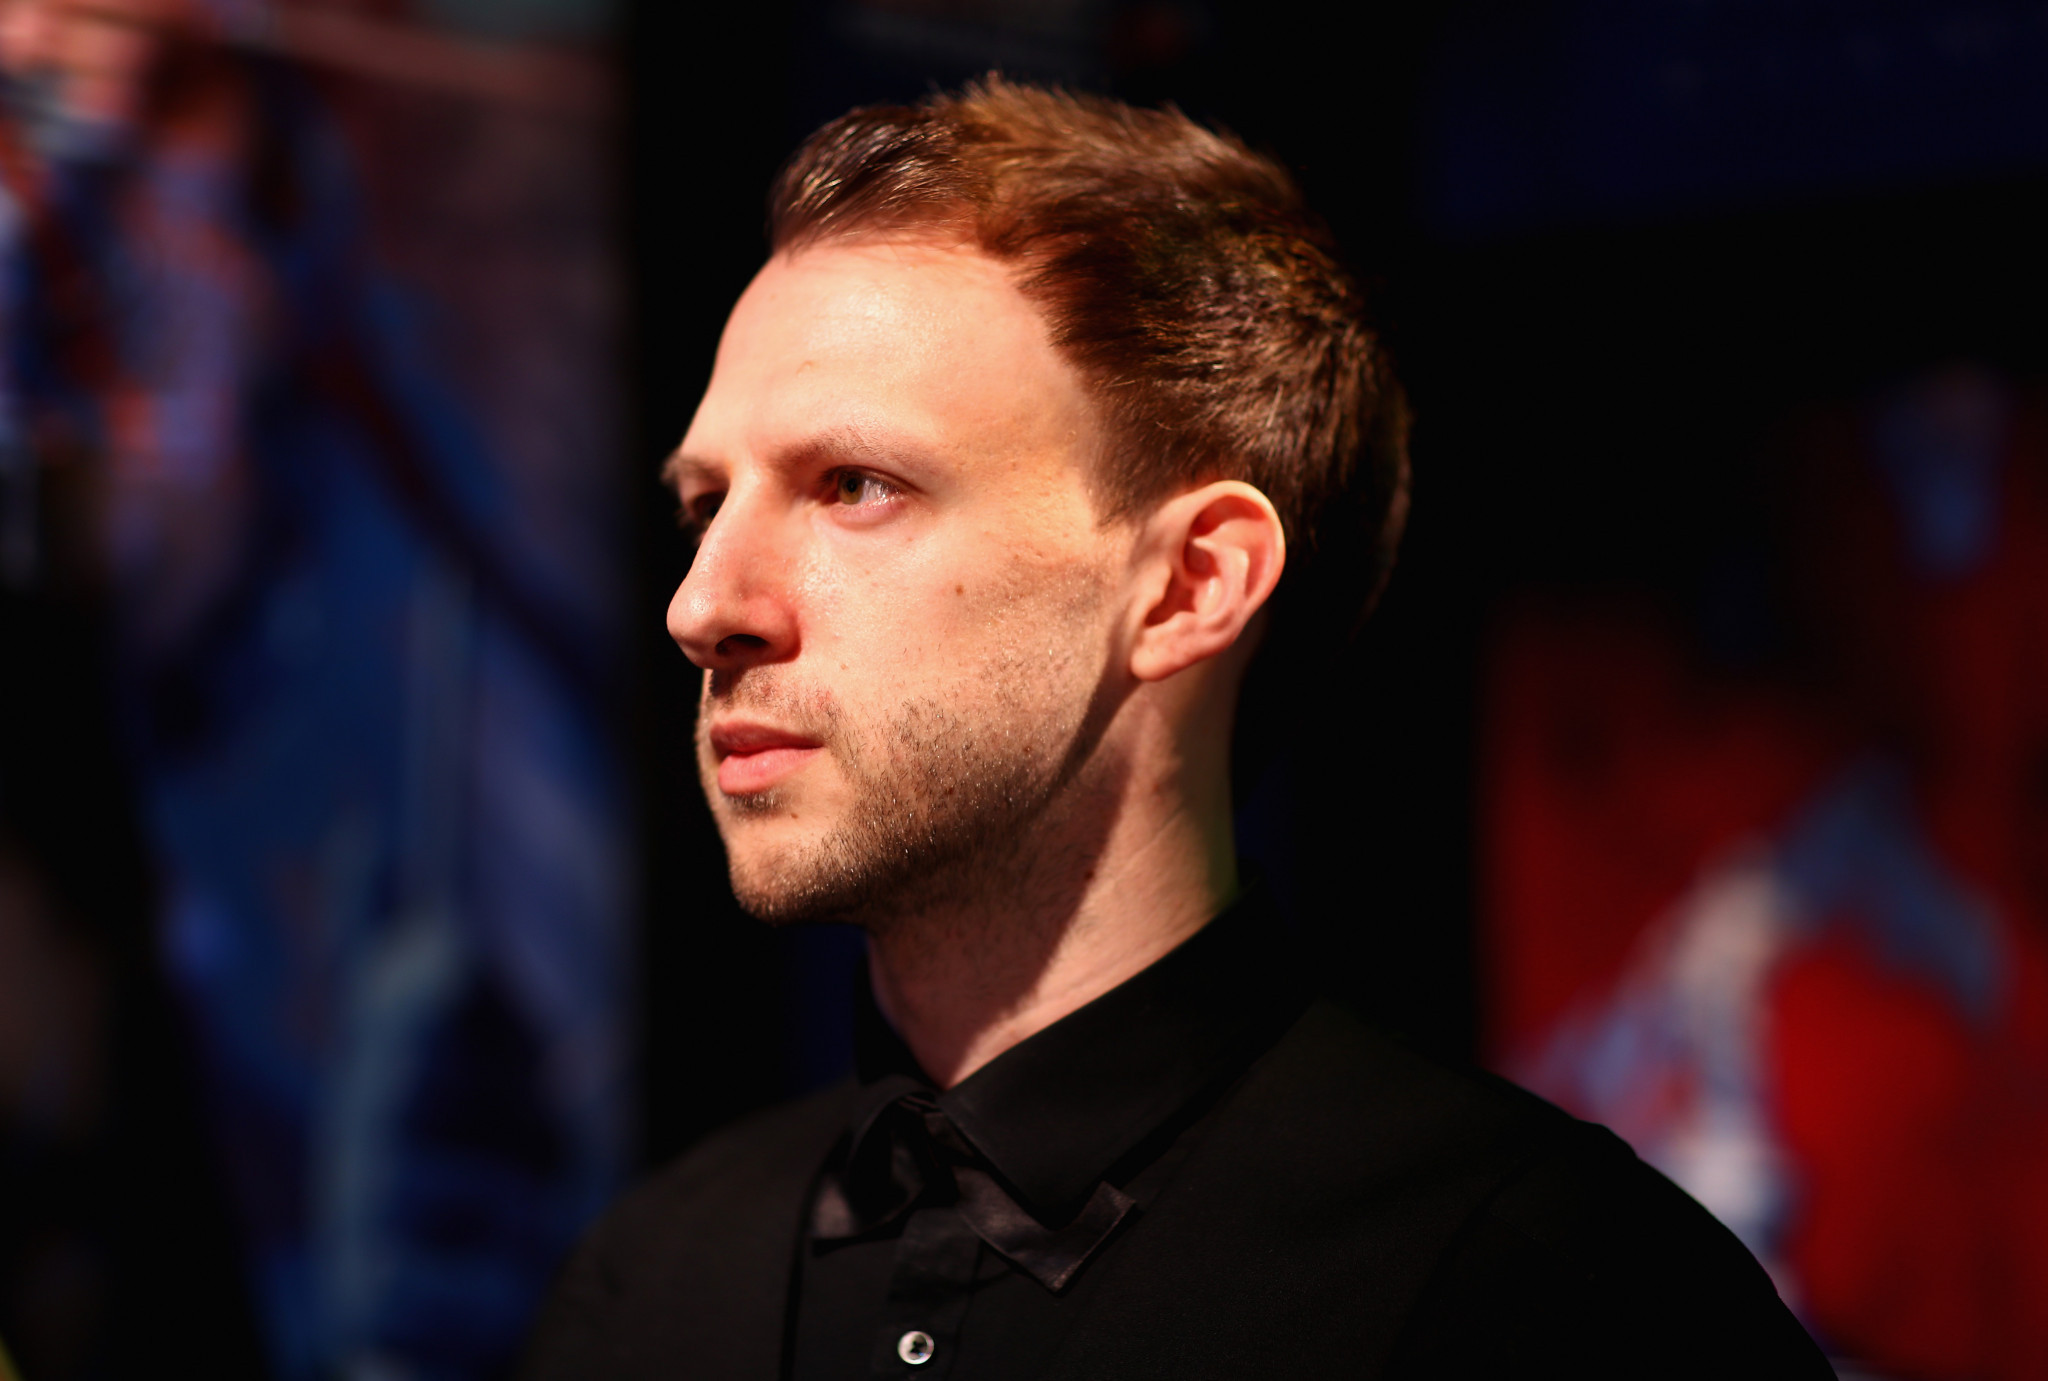 England's Judd Trump is level at 8-8 with compatriot Ricky Walden ©Getty Images